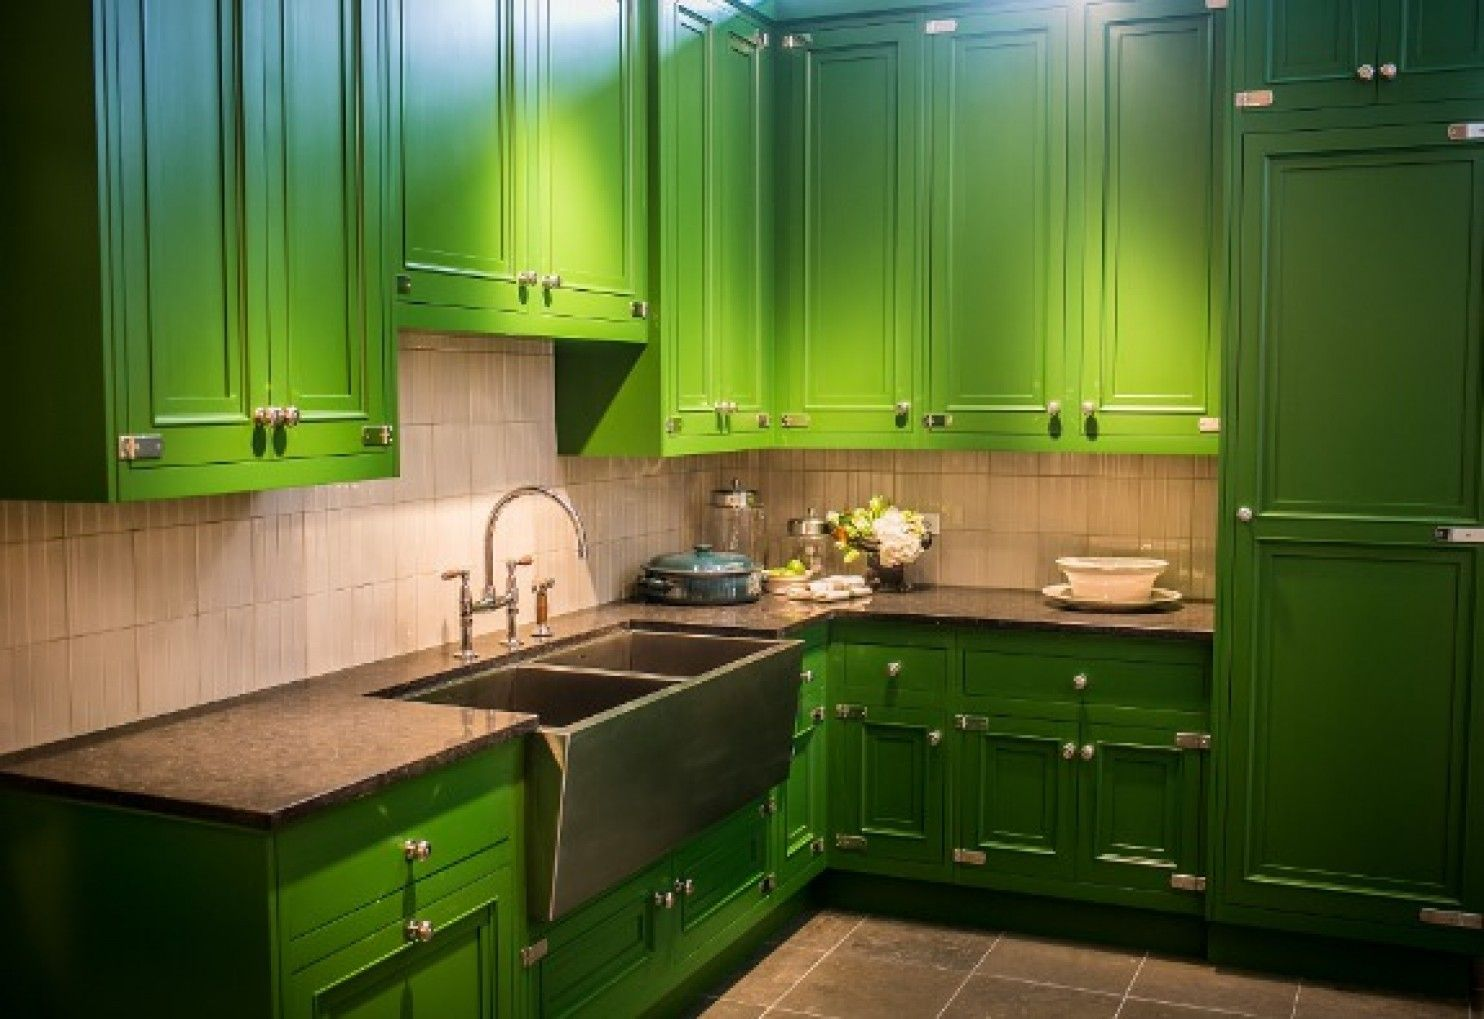 What's new in kitchens   Classic kitchen cabinets, Kitchen ...